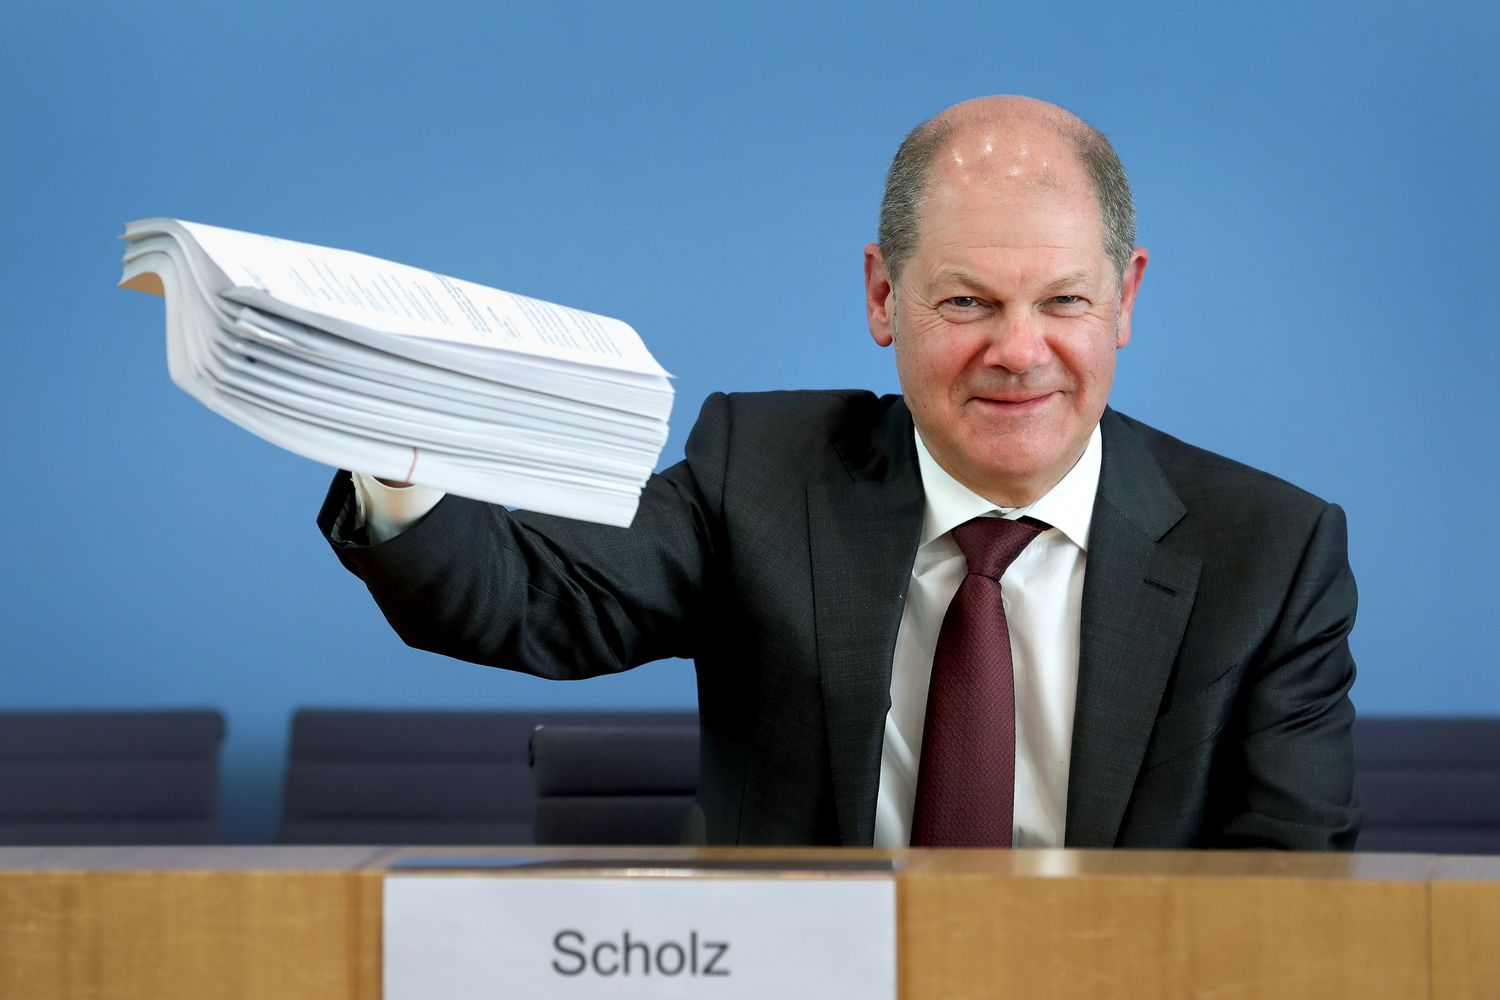 German Finance Minister Olaf Scholz holds a stack of files during a joint news conference with Economy Minister Peter Altmaier to reveal details of a supplementary budget to counter the impact of the coronavirus outbreak, in Berlin, on Monday. (Michael Sohn/Pool via Reuters)